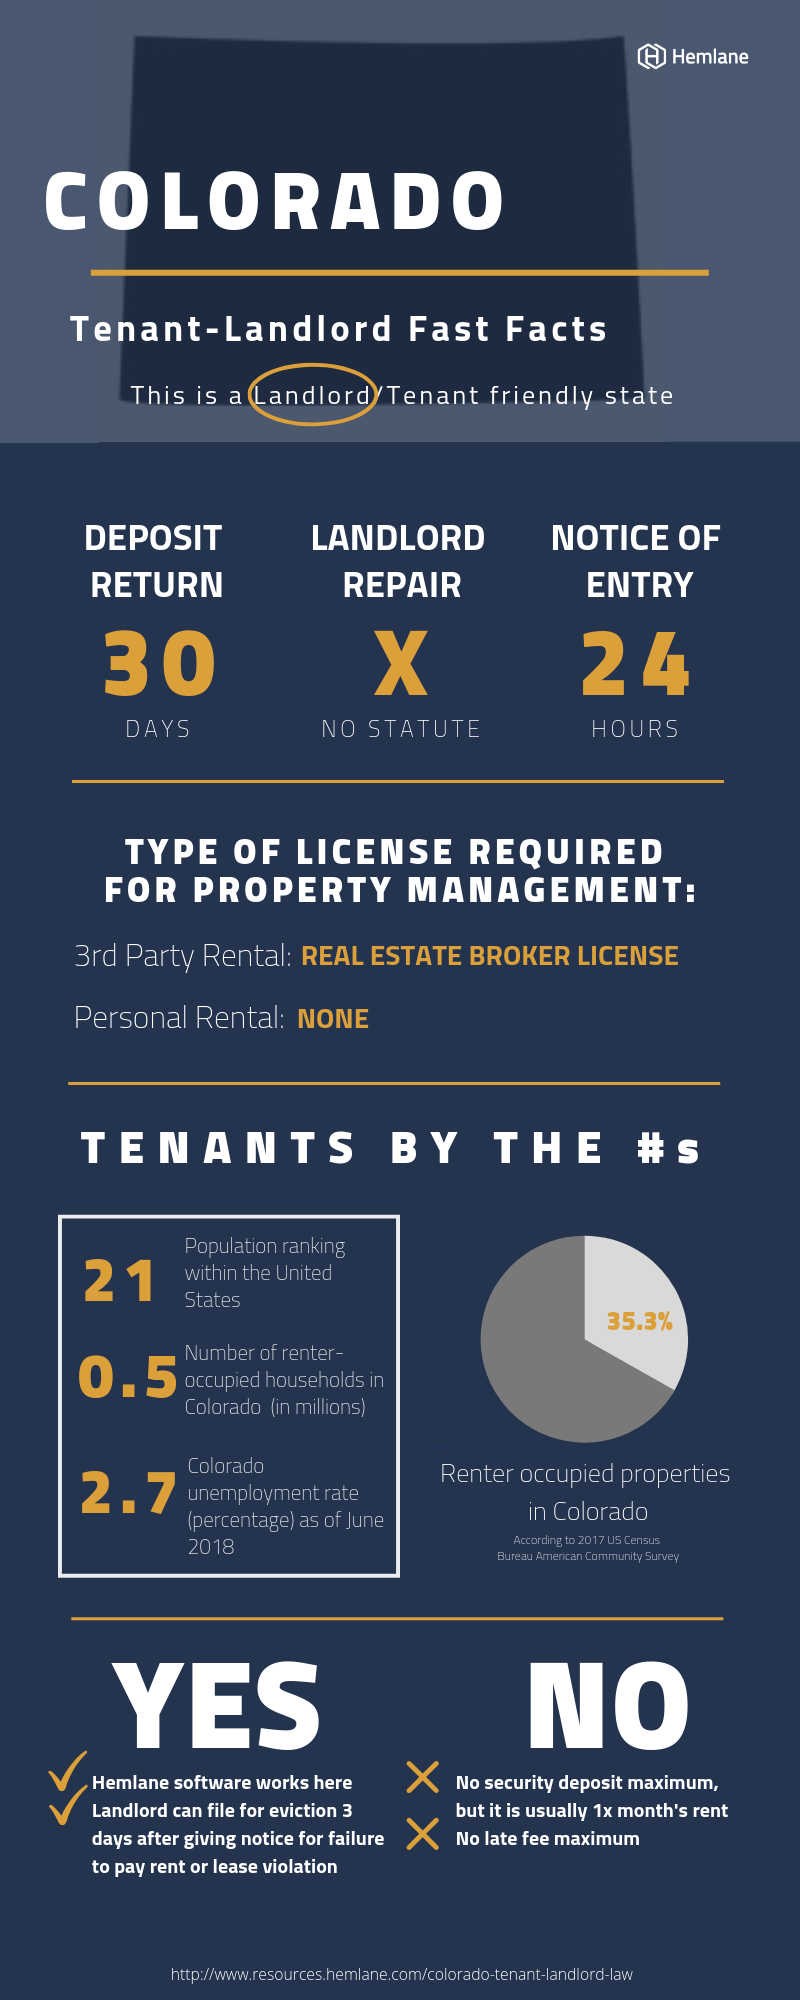 Colorado-Landlord-Tenant-Law-Fast-Facts